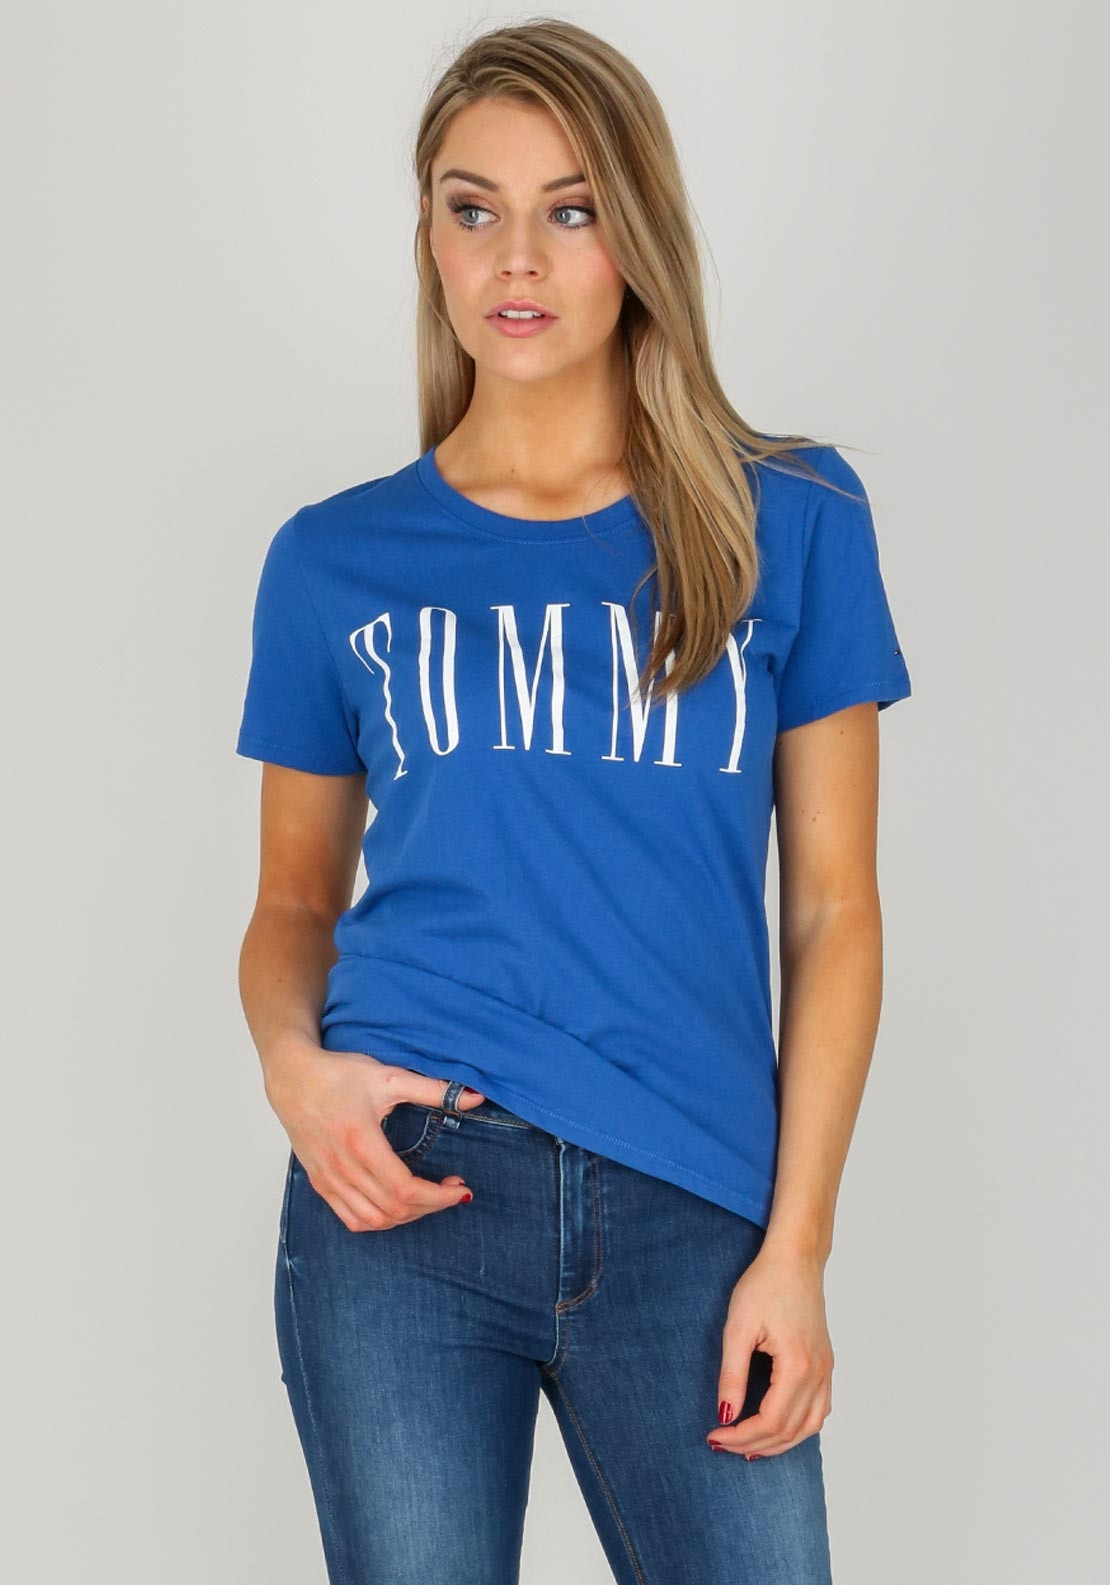 225d8f580 Tommy Jeans Womens Tommy T-Shirt, Blue. Be the first to review this product